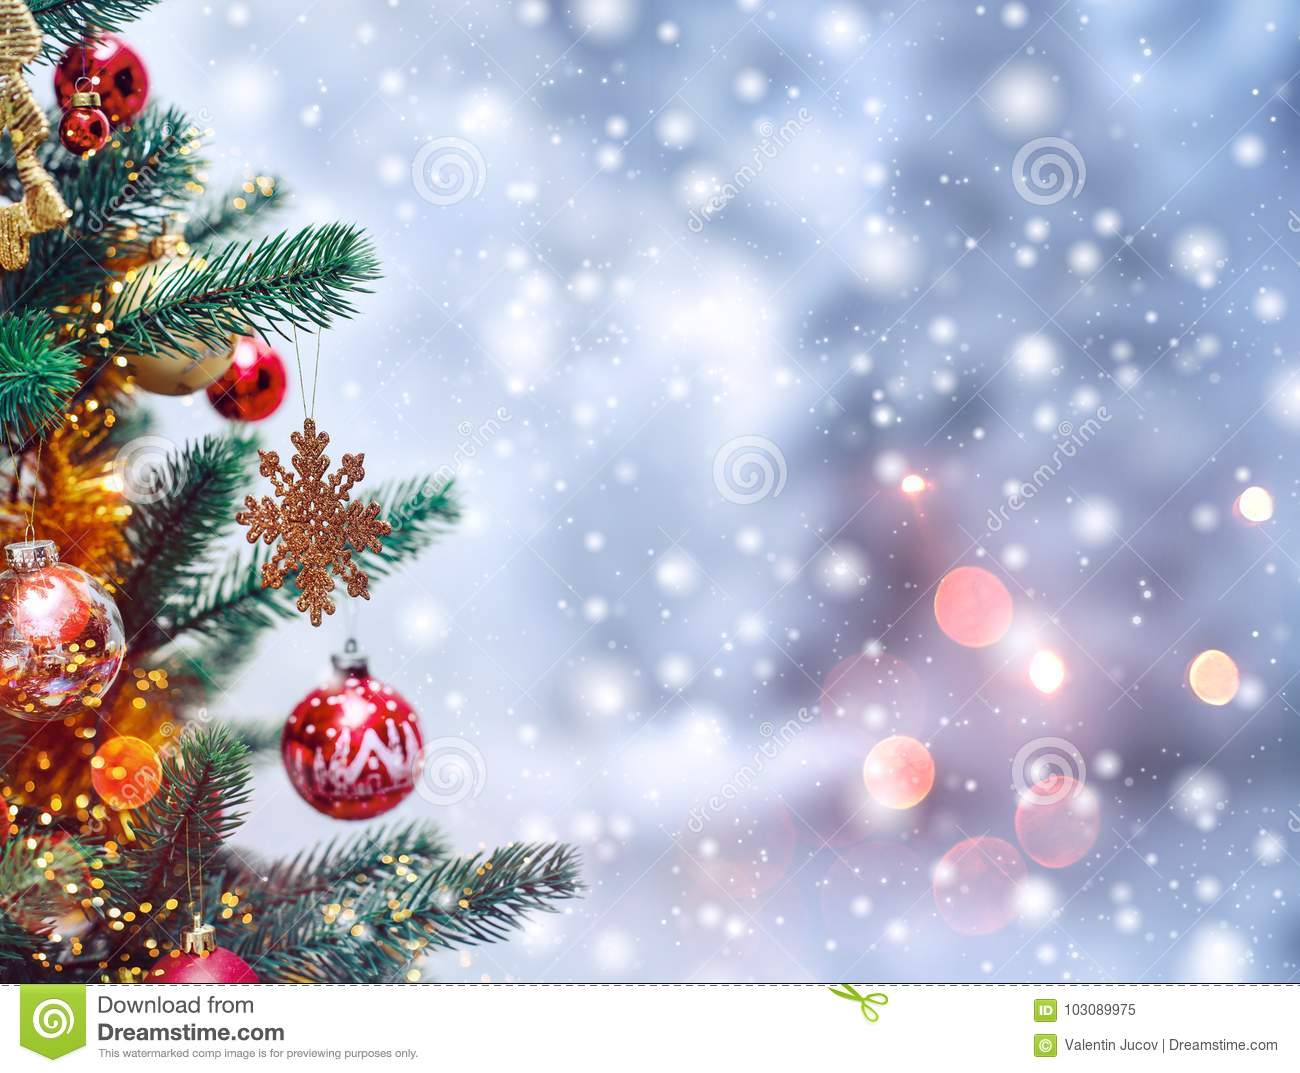 christmas decorations background images